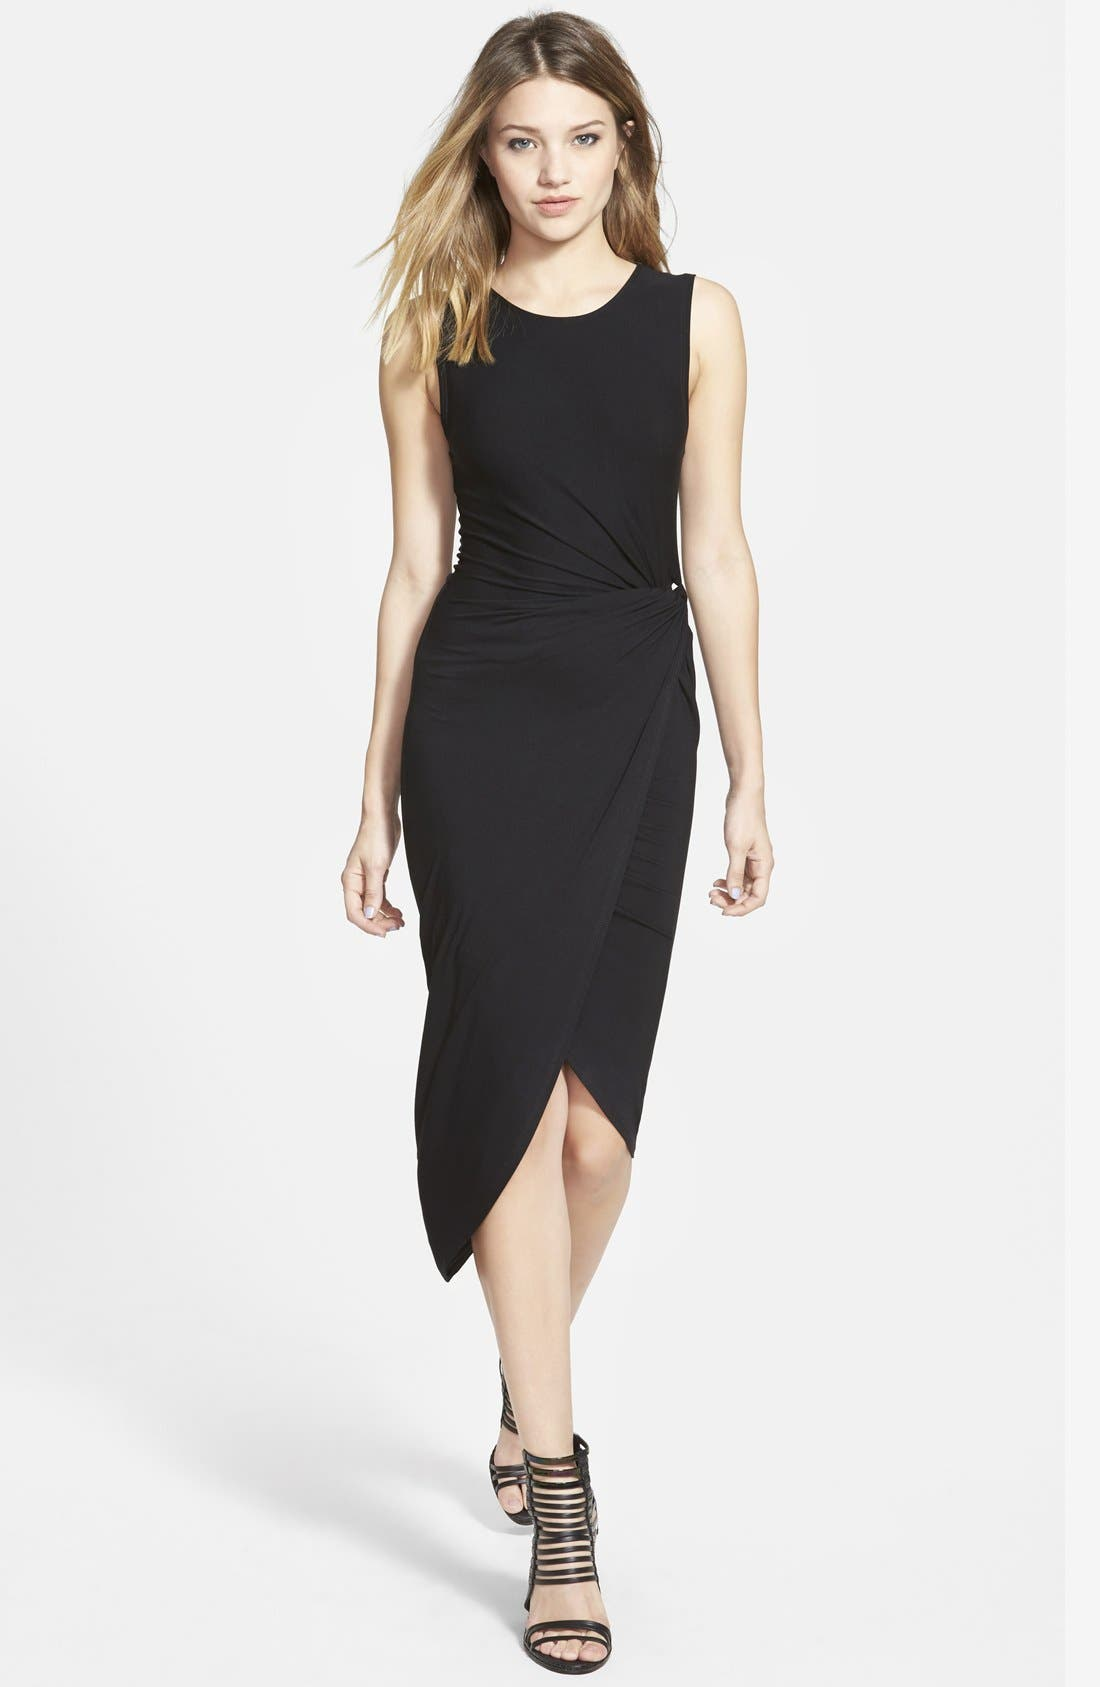 ASTR Knotted Body-Con Dress,                             Main thumbnail 1, color,                             001